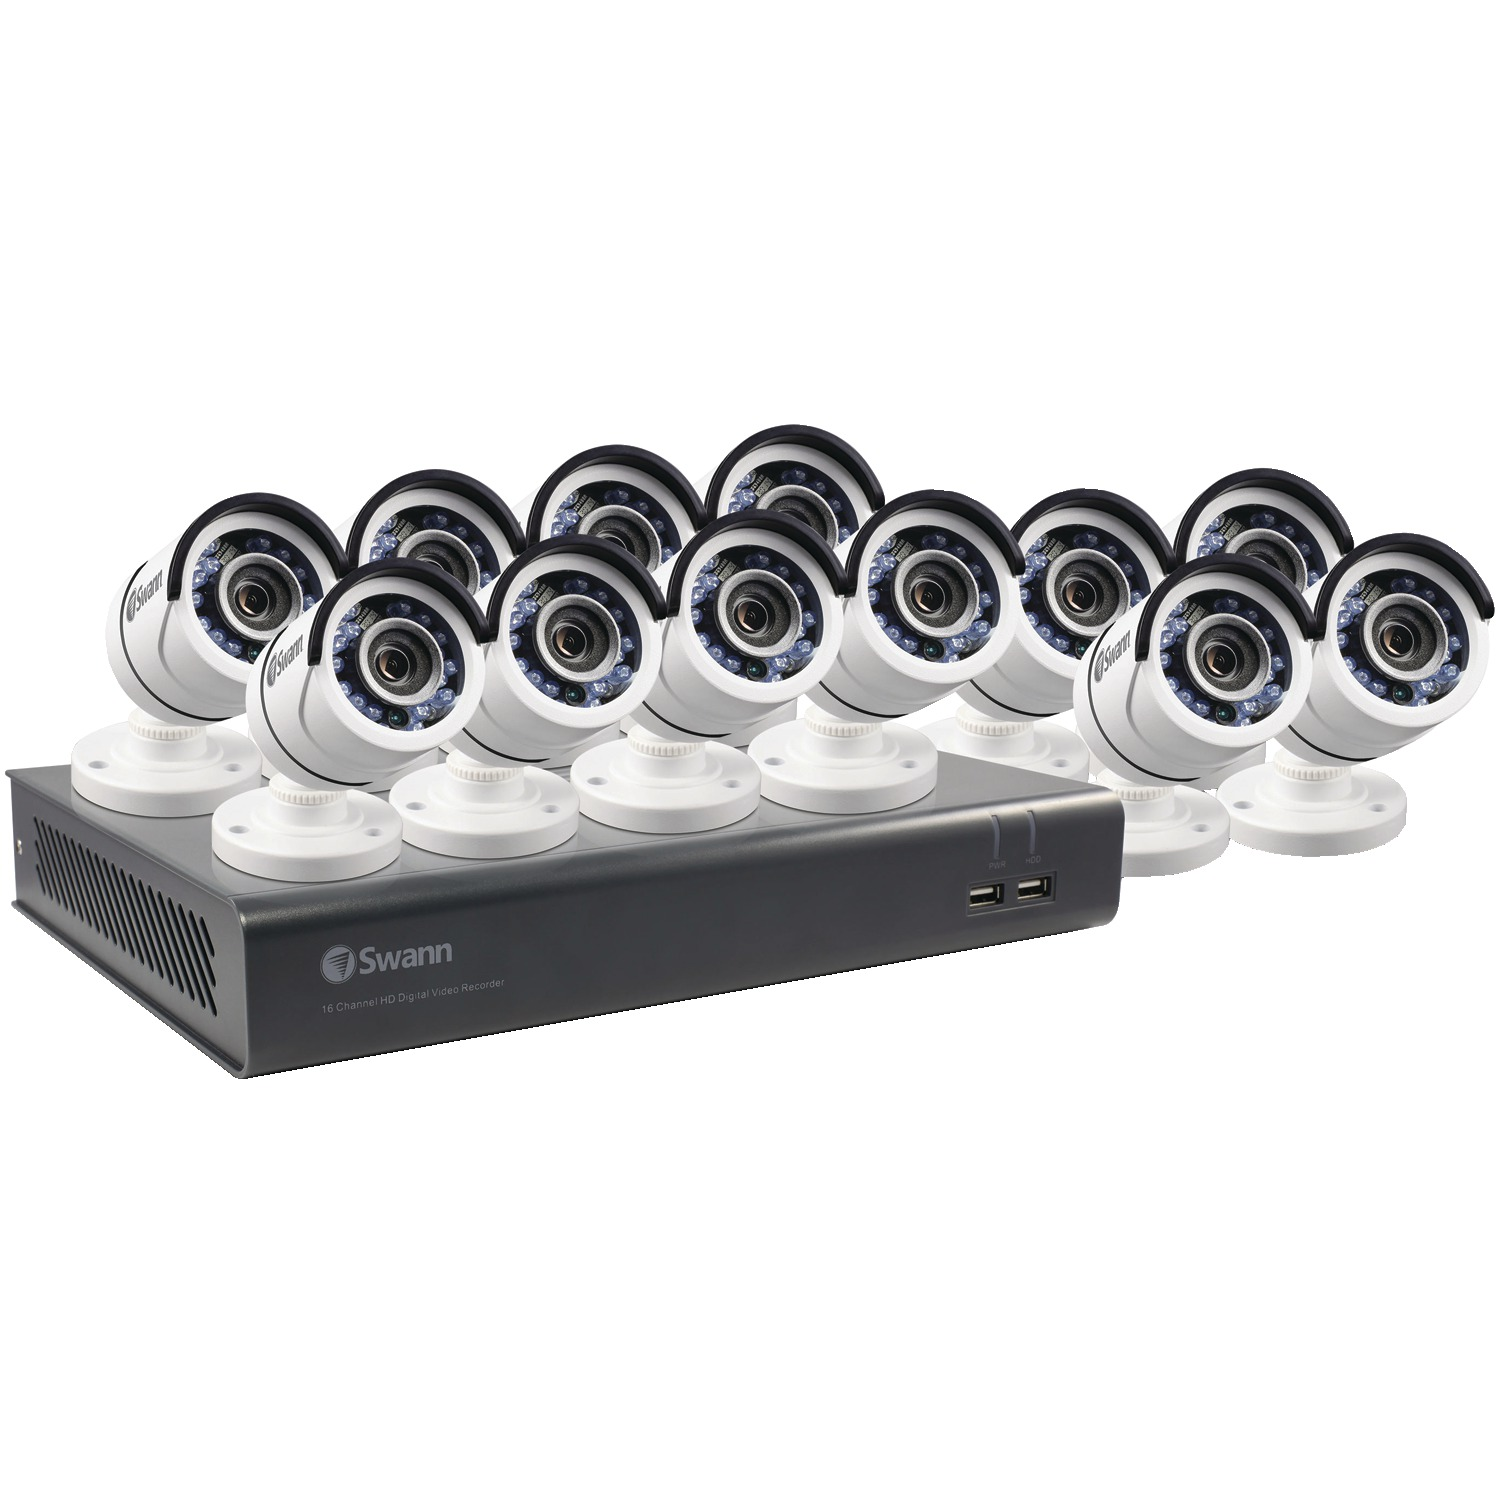 Swann SWDVK-1645912-US 16-Channel 4595 Series 1080p DVR With 2TB HD & 12 Bullet Cameras